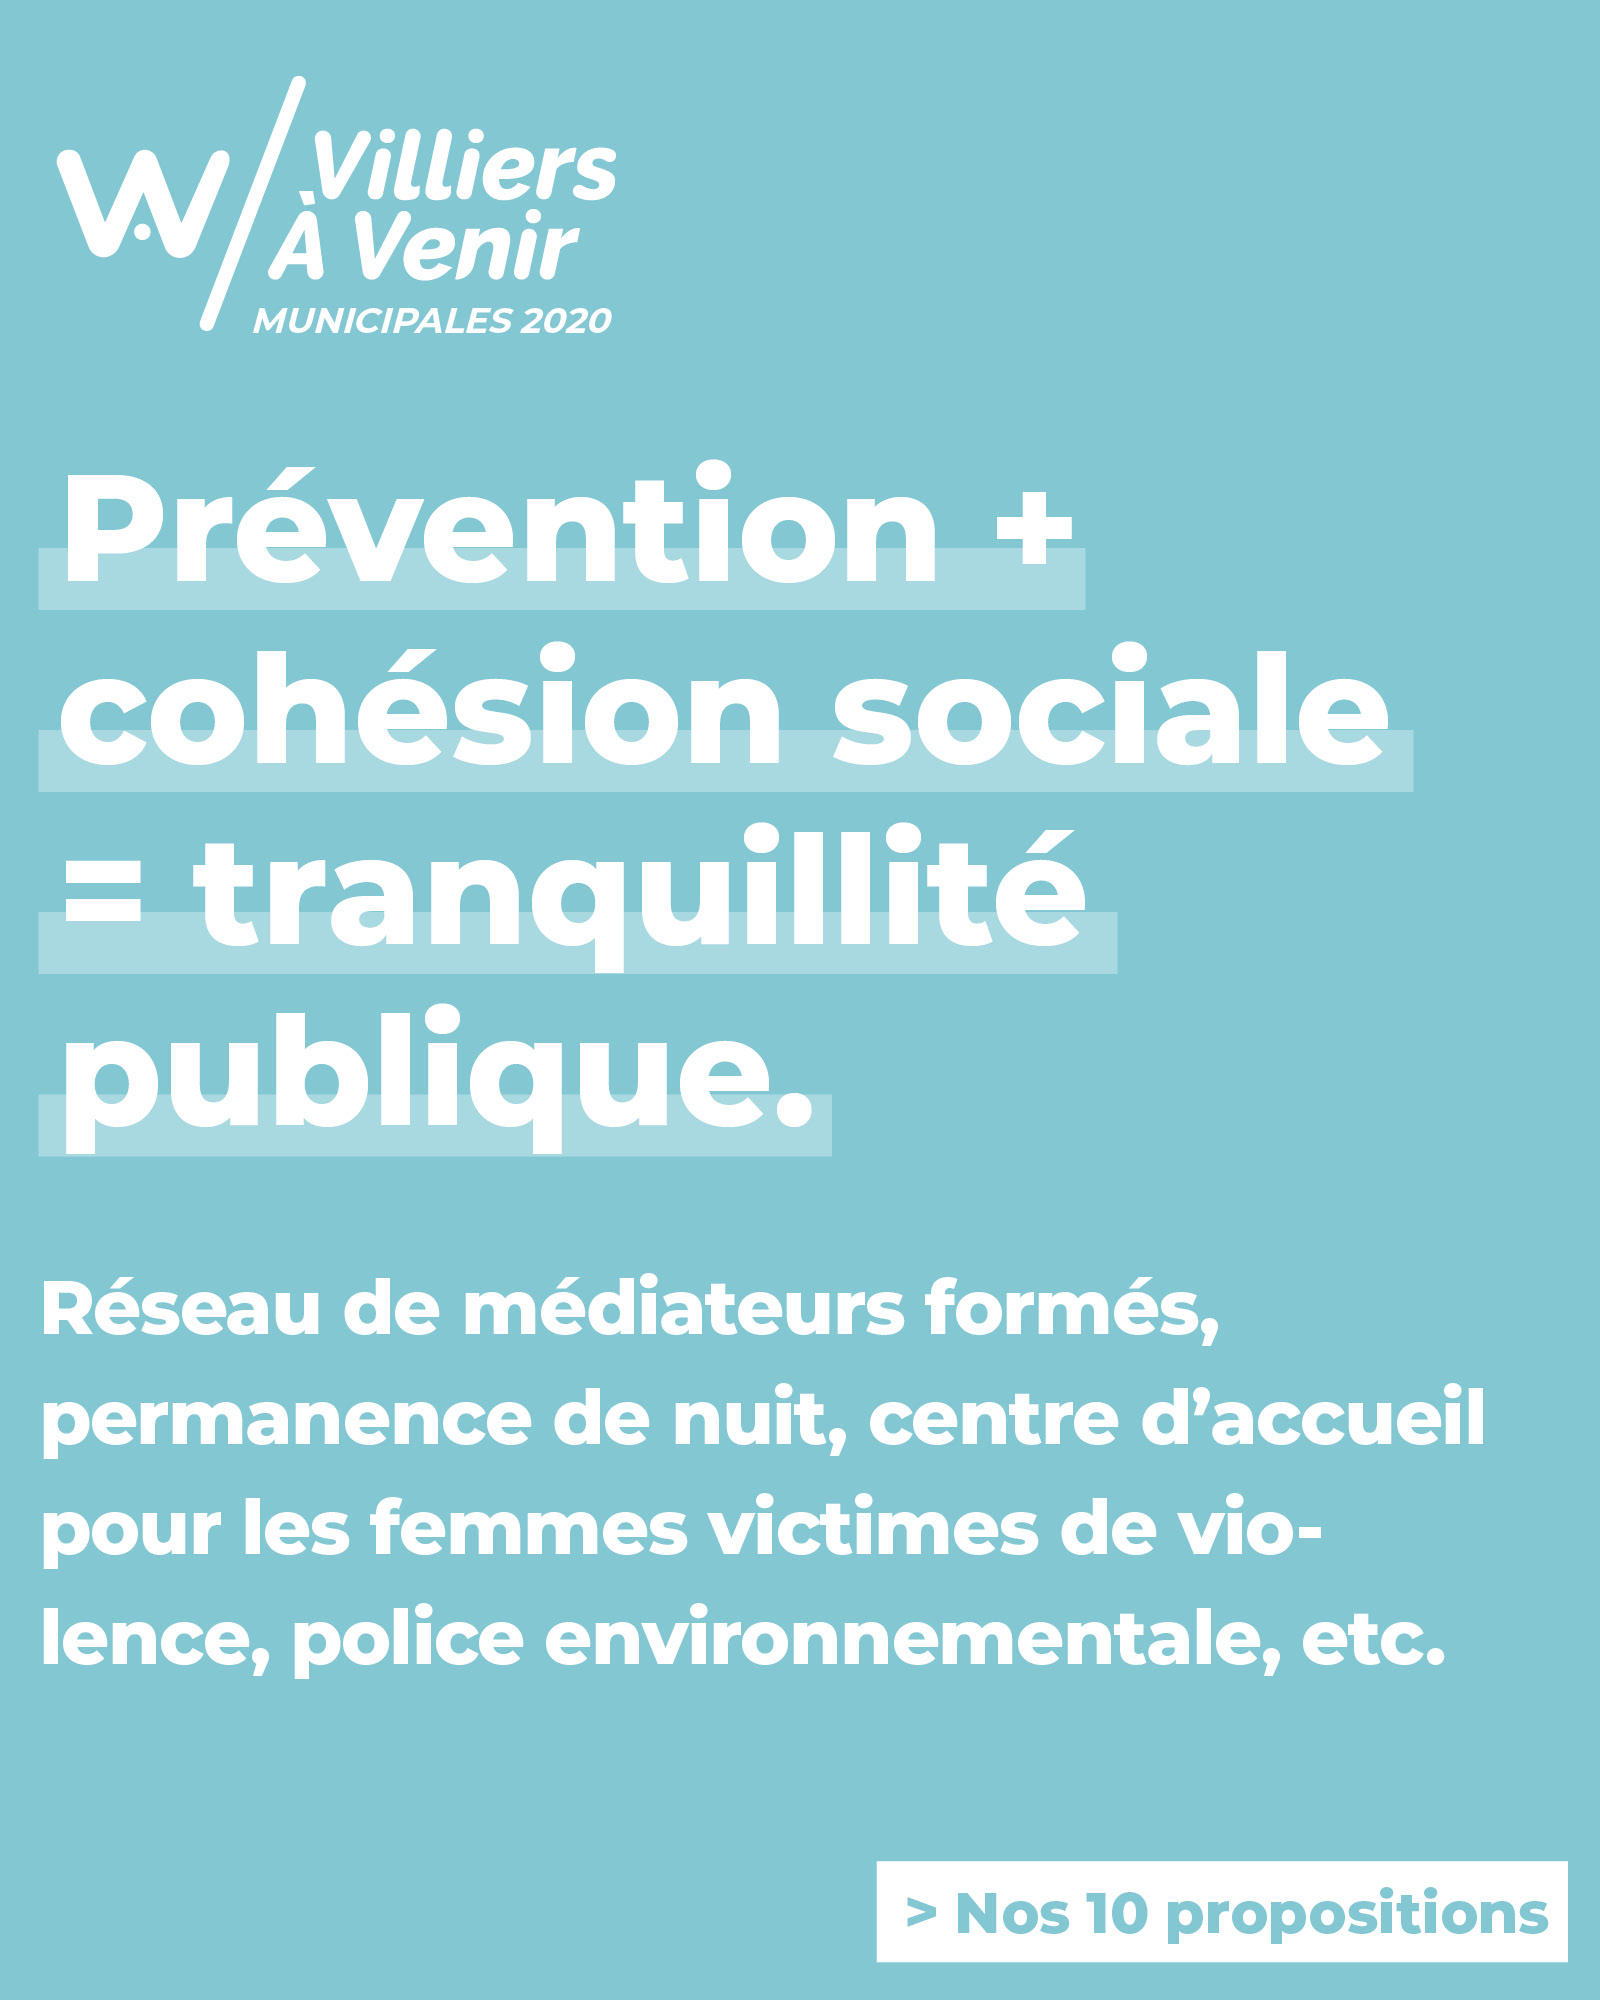 http://vav94.fr/wp-content/uploads/2020/02/SECURITE-VILLIERS-SUR-MARNE-PREVENTION-TRANQUILLITE-PUBLIQUE-VAV-MUNICIPALES-2020.jpg